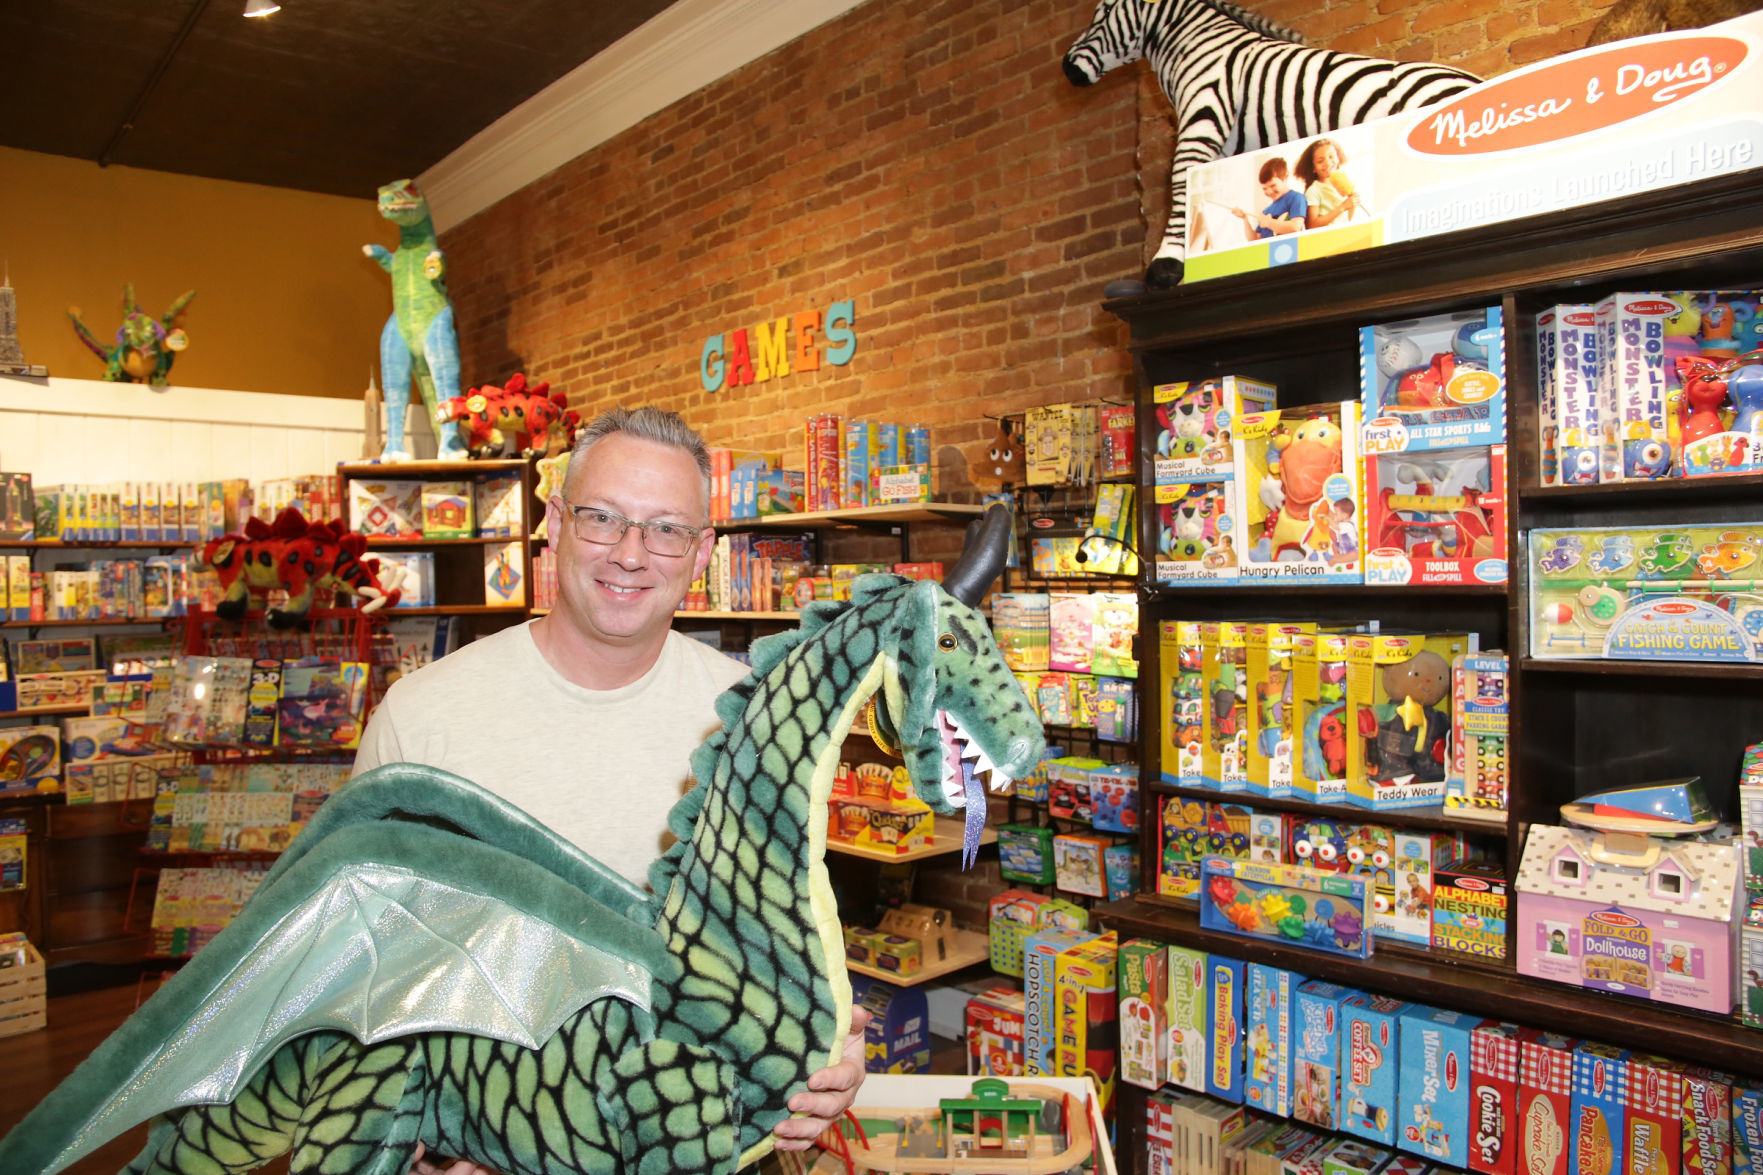 As Valparaiso Continues To Grow Its Focus Remains On